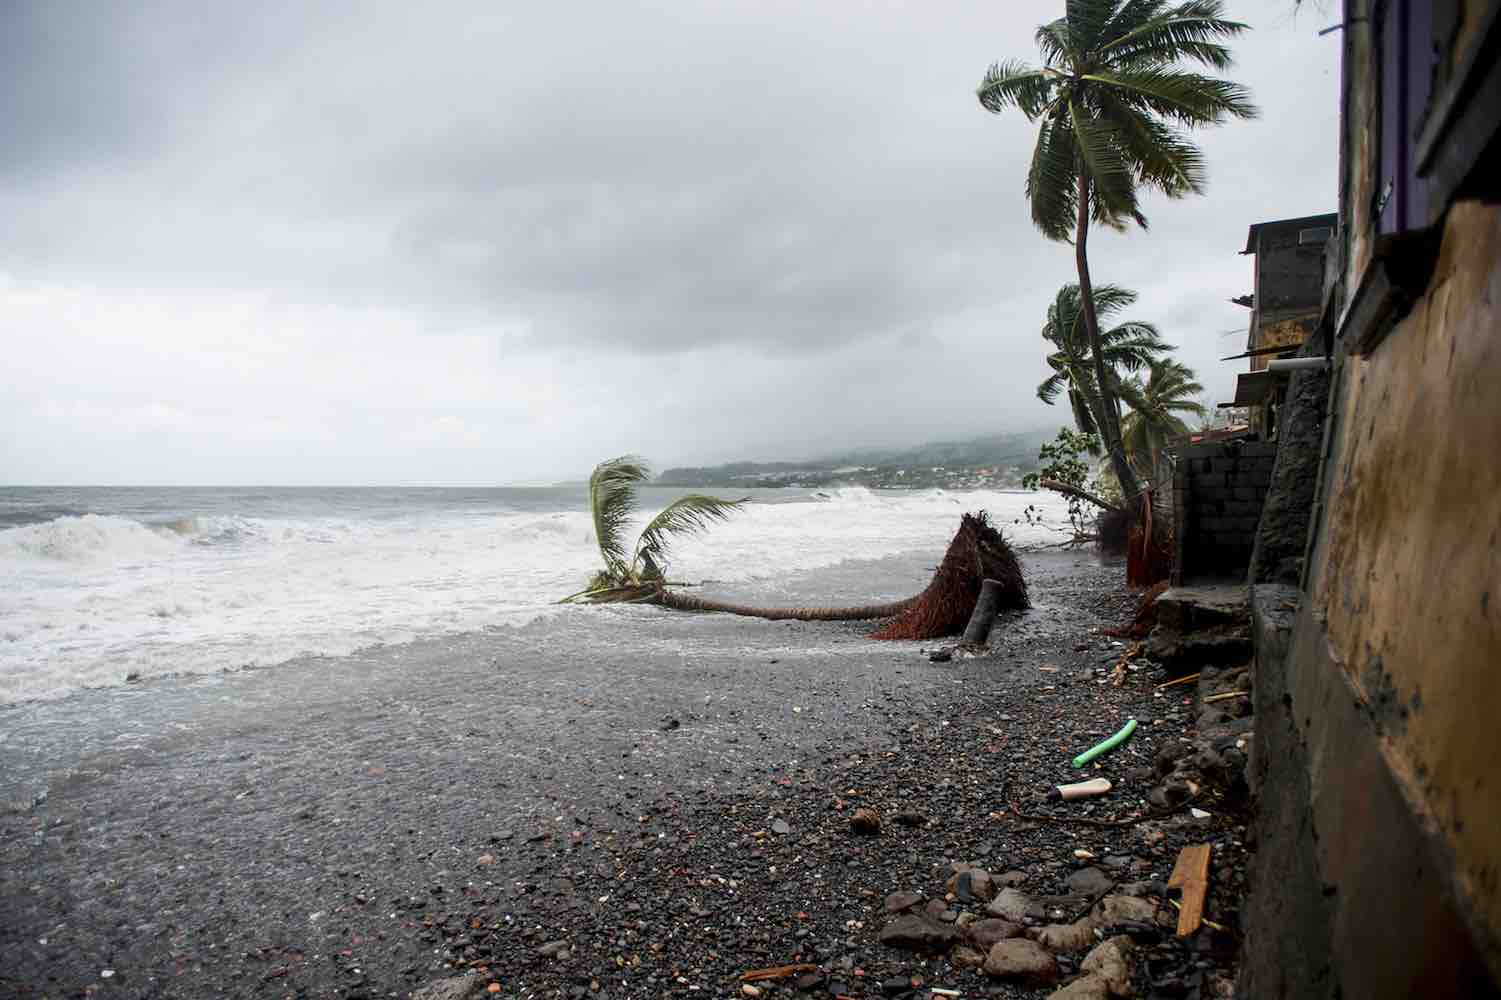 <div class='meta'><div class='origin-logo' data-origin='Creative Content'></div><span class='caption-text' data-credit='LIONEL CHAMOISEAU/AFP/Getty'>A picture shows an uprooted tree on the beach in Saint-Pierre, on the French Caribbean island of Martinique, after it was hit by Hurricane Maria, on September 19, 2017.</span></div>